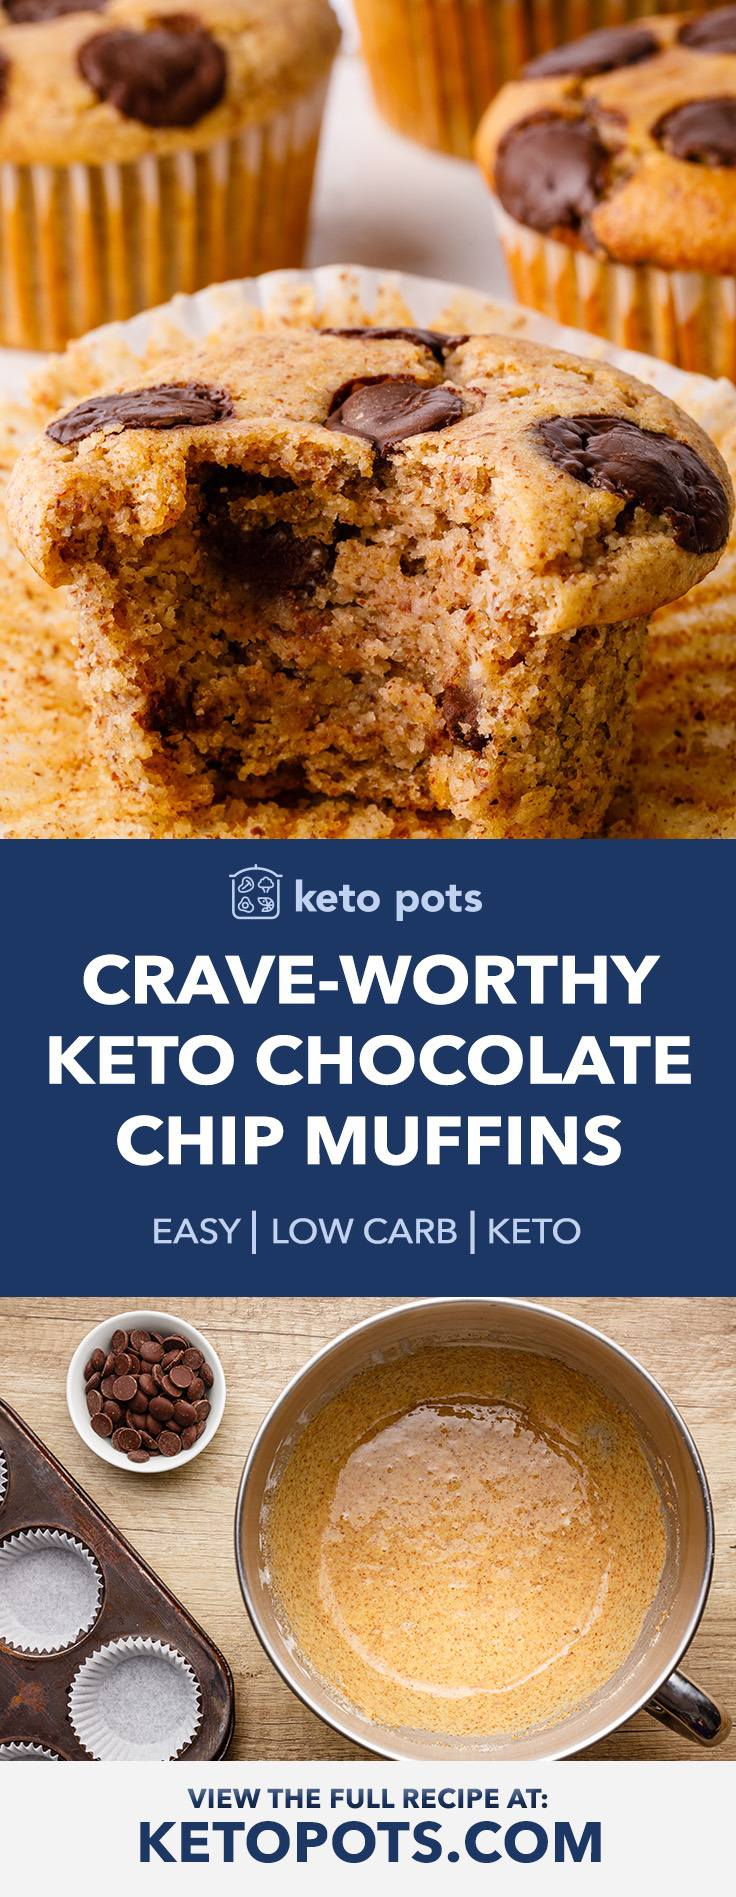 Easy Keto Chocolate Chip Muffins for a Quick Snack or Dessert